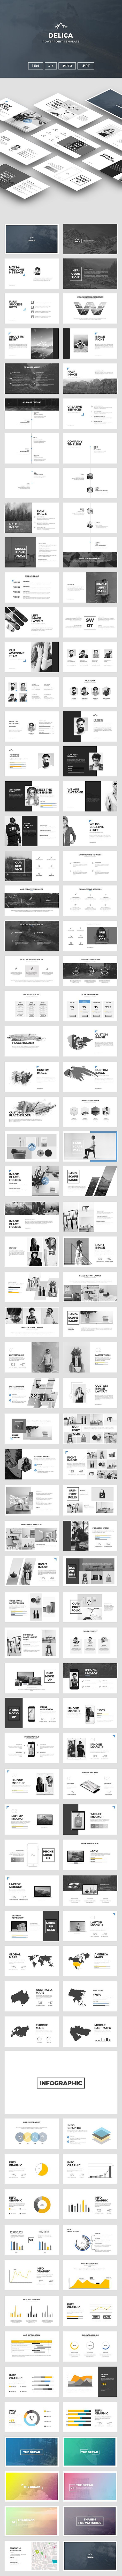 Delica Powerpoint Presentation  Template • Only available here ➝ http://graphicriver.net/item/delica-powerpoint-presentation/16647261?ref=pxcr